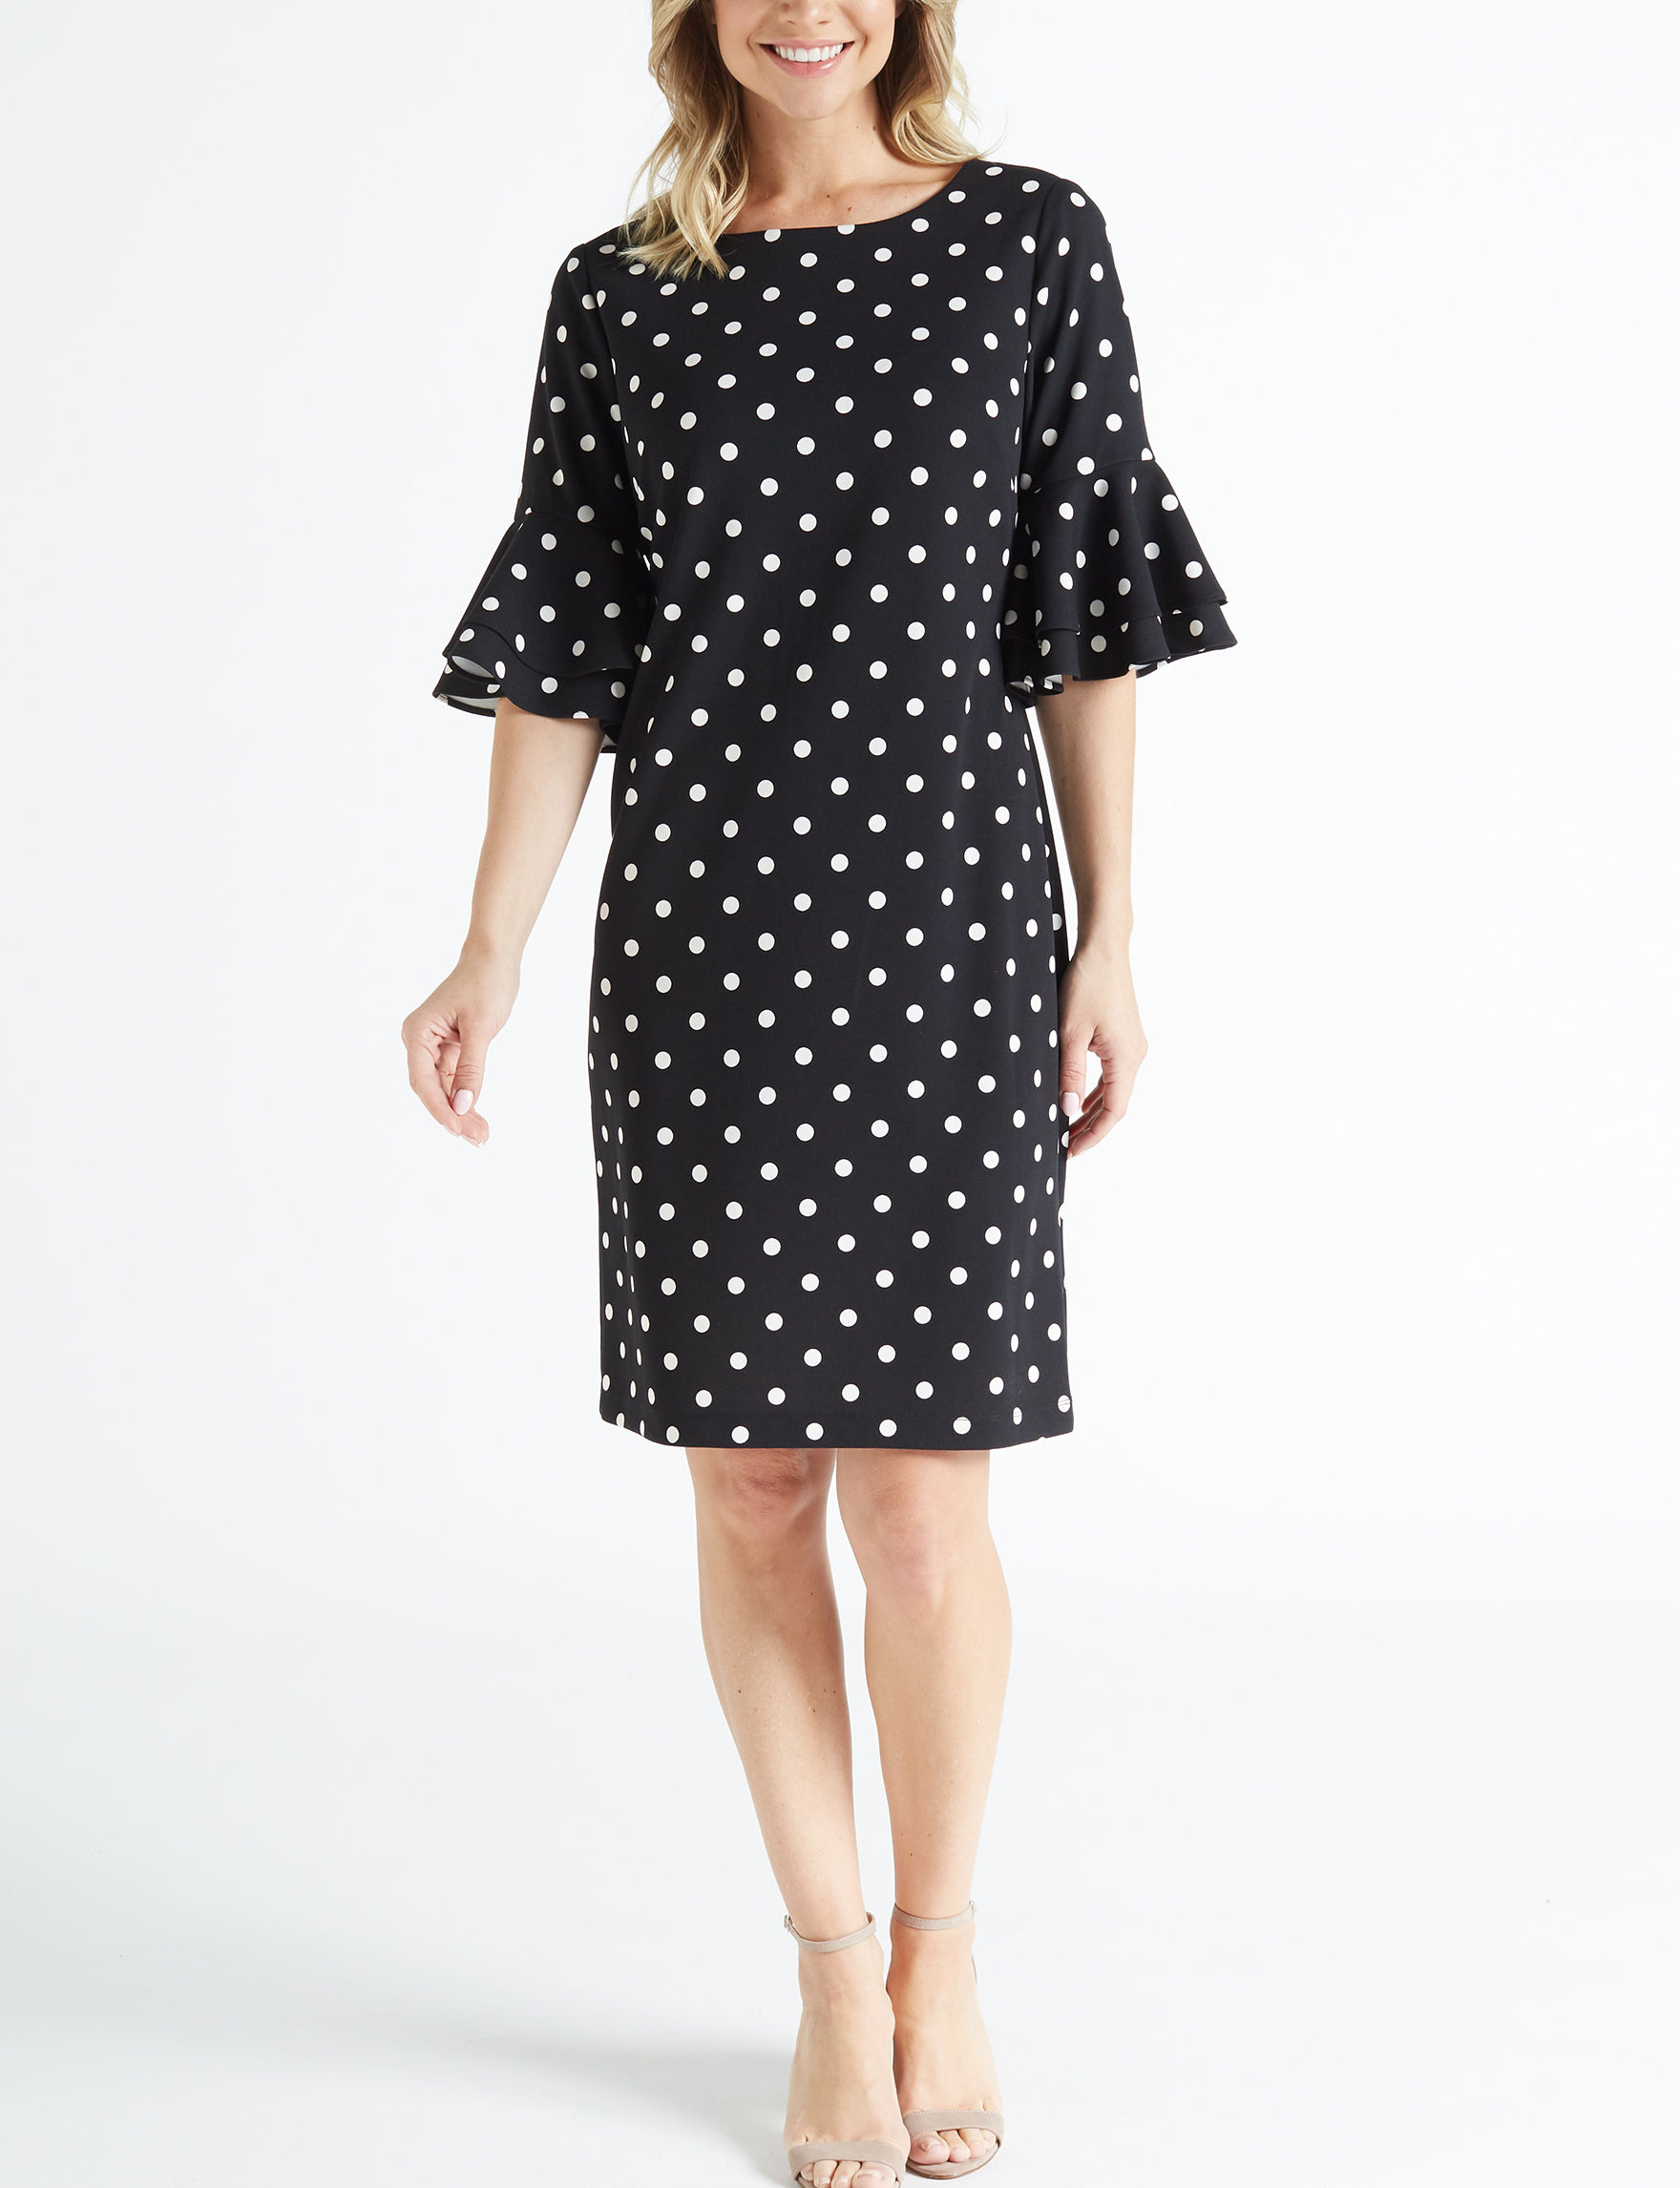 Ronni Nicole Black Everyday & Casual Shift Dresses